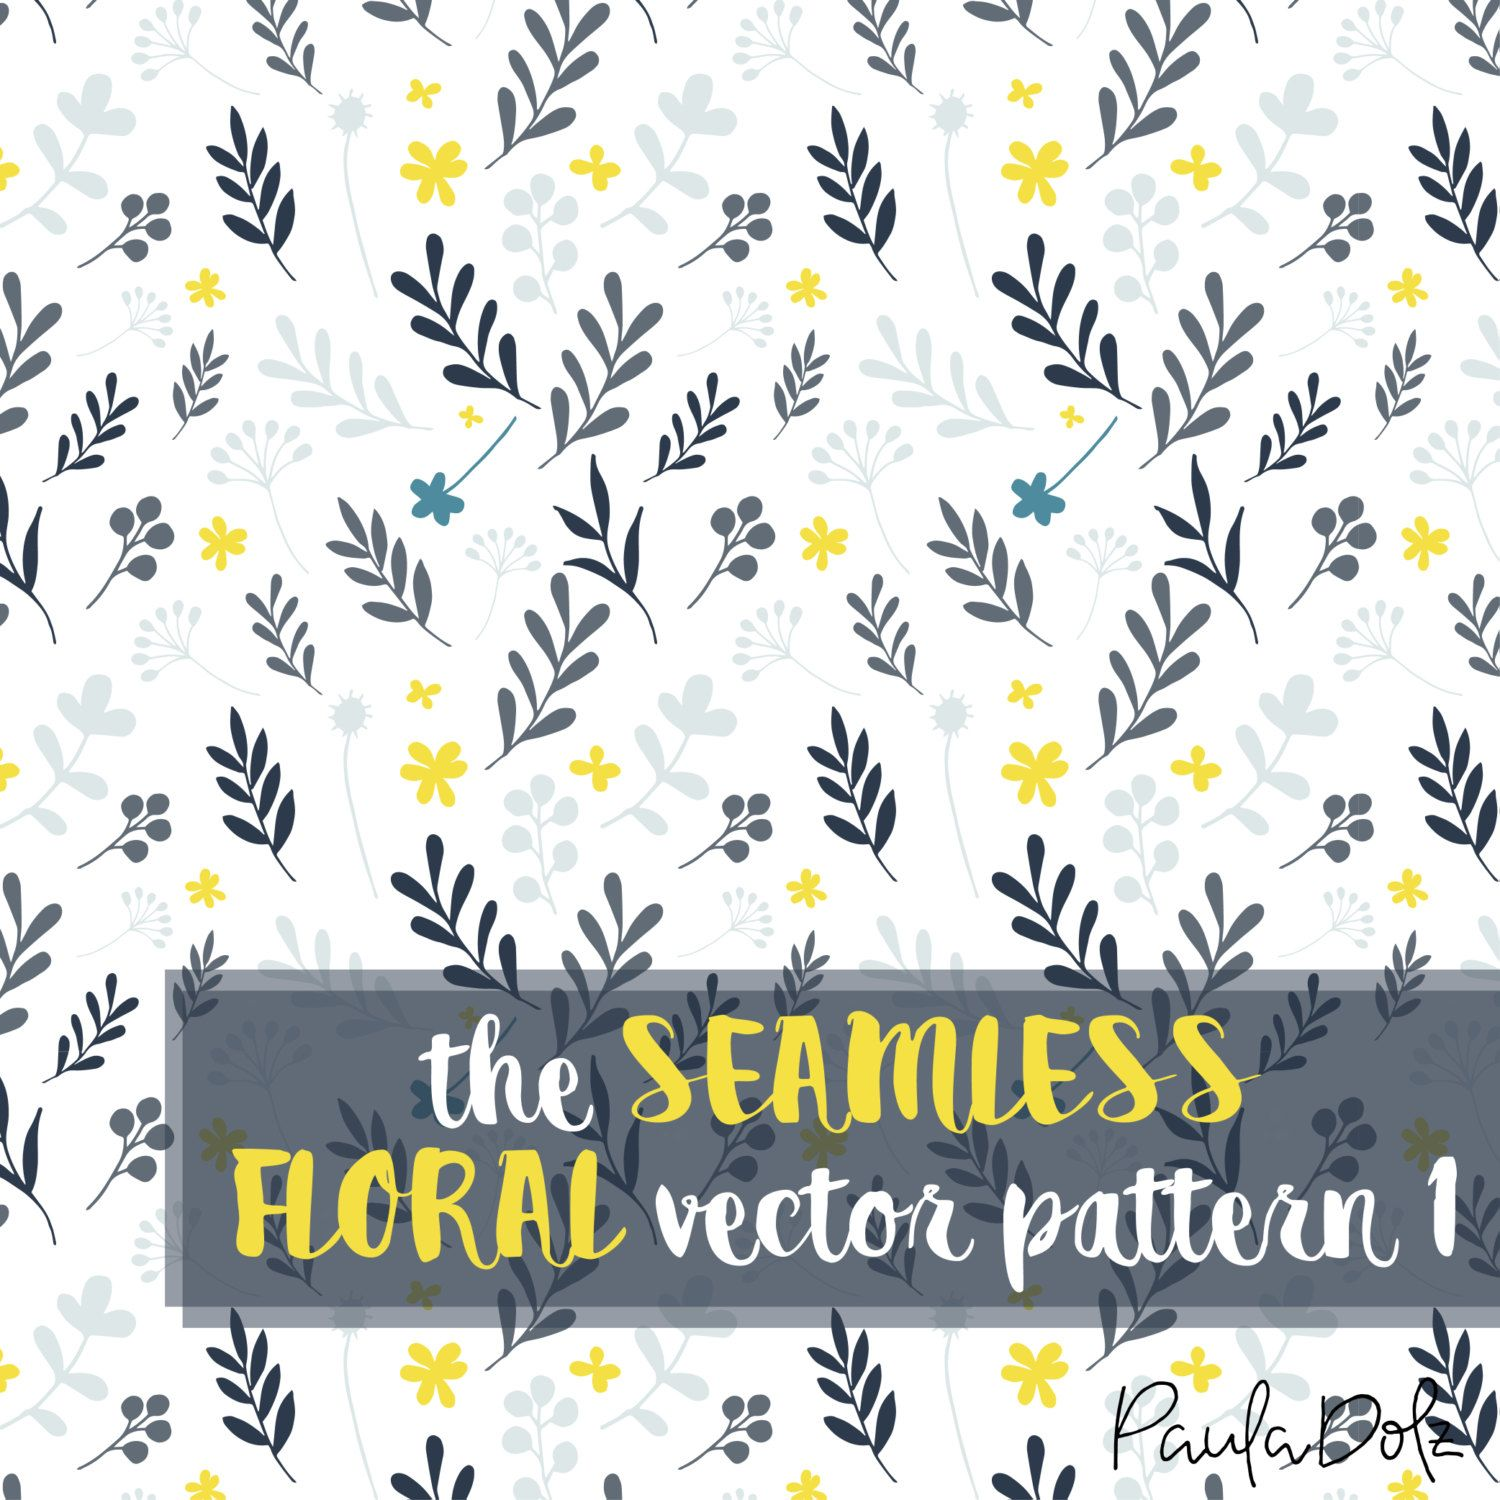 The Seamless Floral Vector Pattern 1 - Blue and Yellow flowers and leaves de PaulaDolz en Etsy